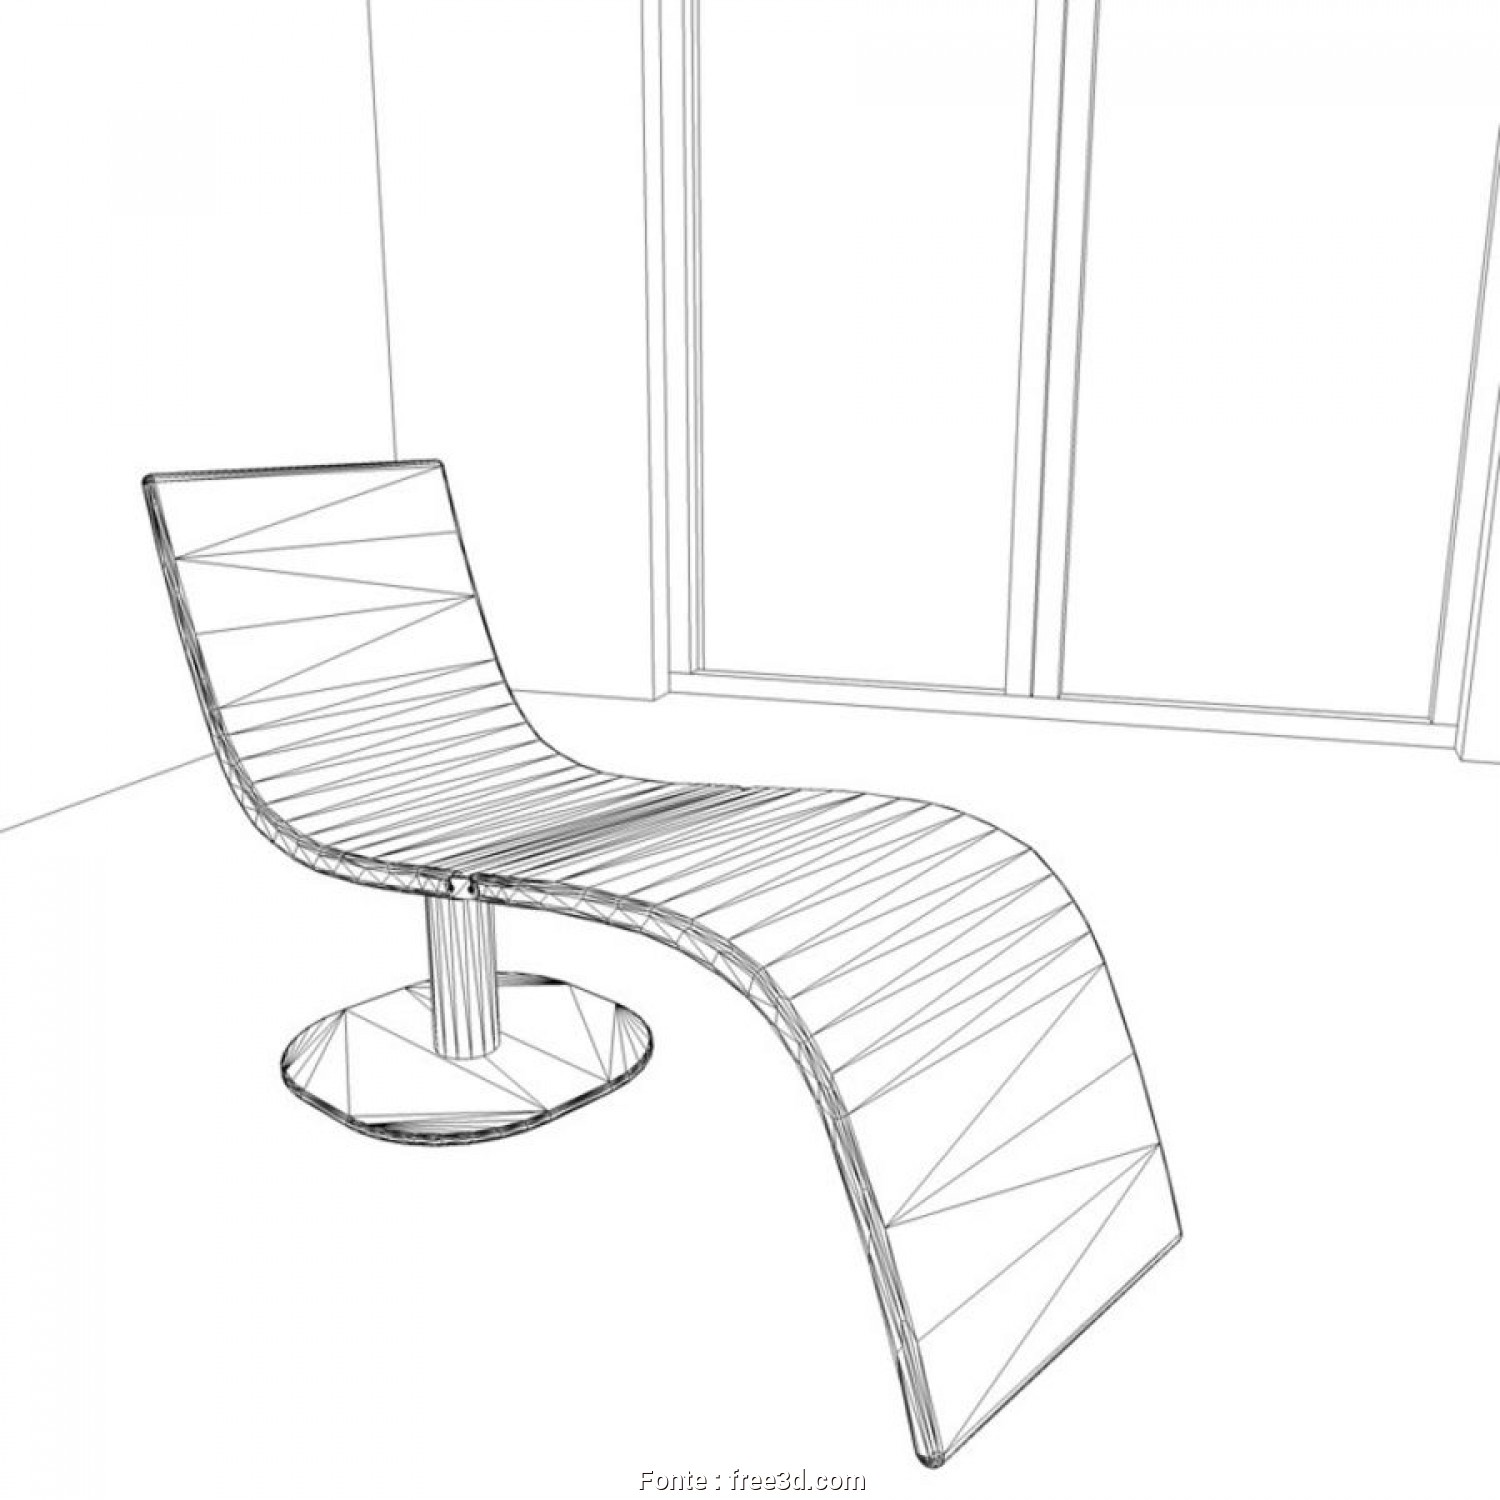 Chaise Longue Design Dwg, Originale Chair-Chaise Longue Dragonfly By Bonaldo, Design Karim Rashid Royalty-Free 3D Model